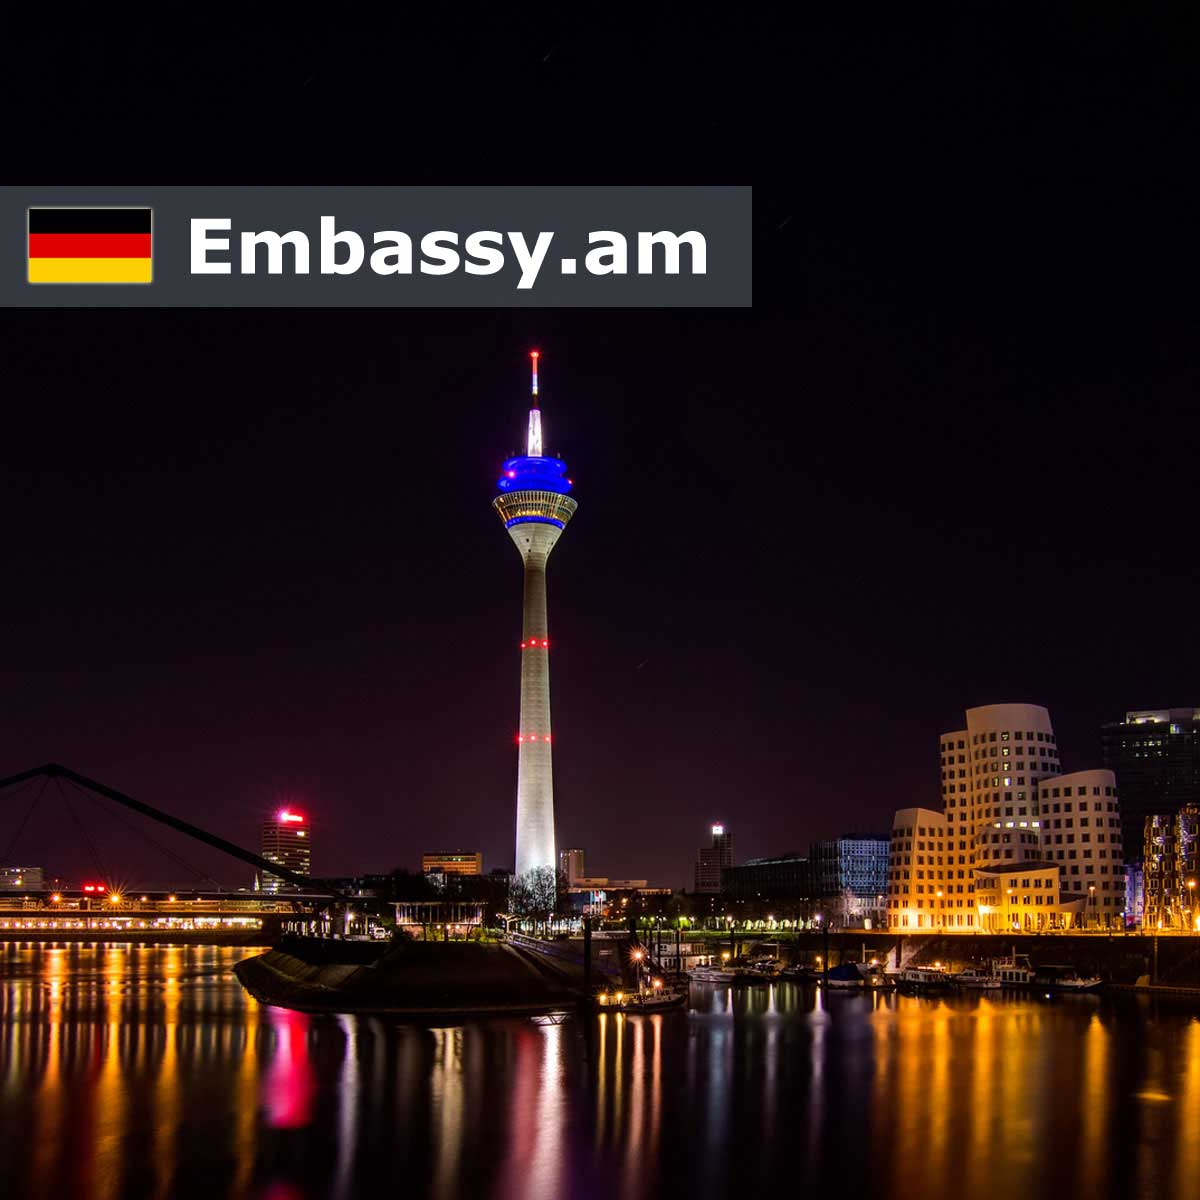 Dusseldorf - Hotels in Germany - Embassy.am